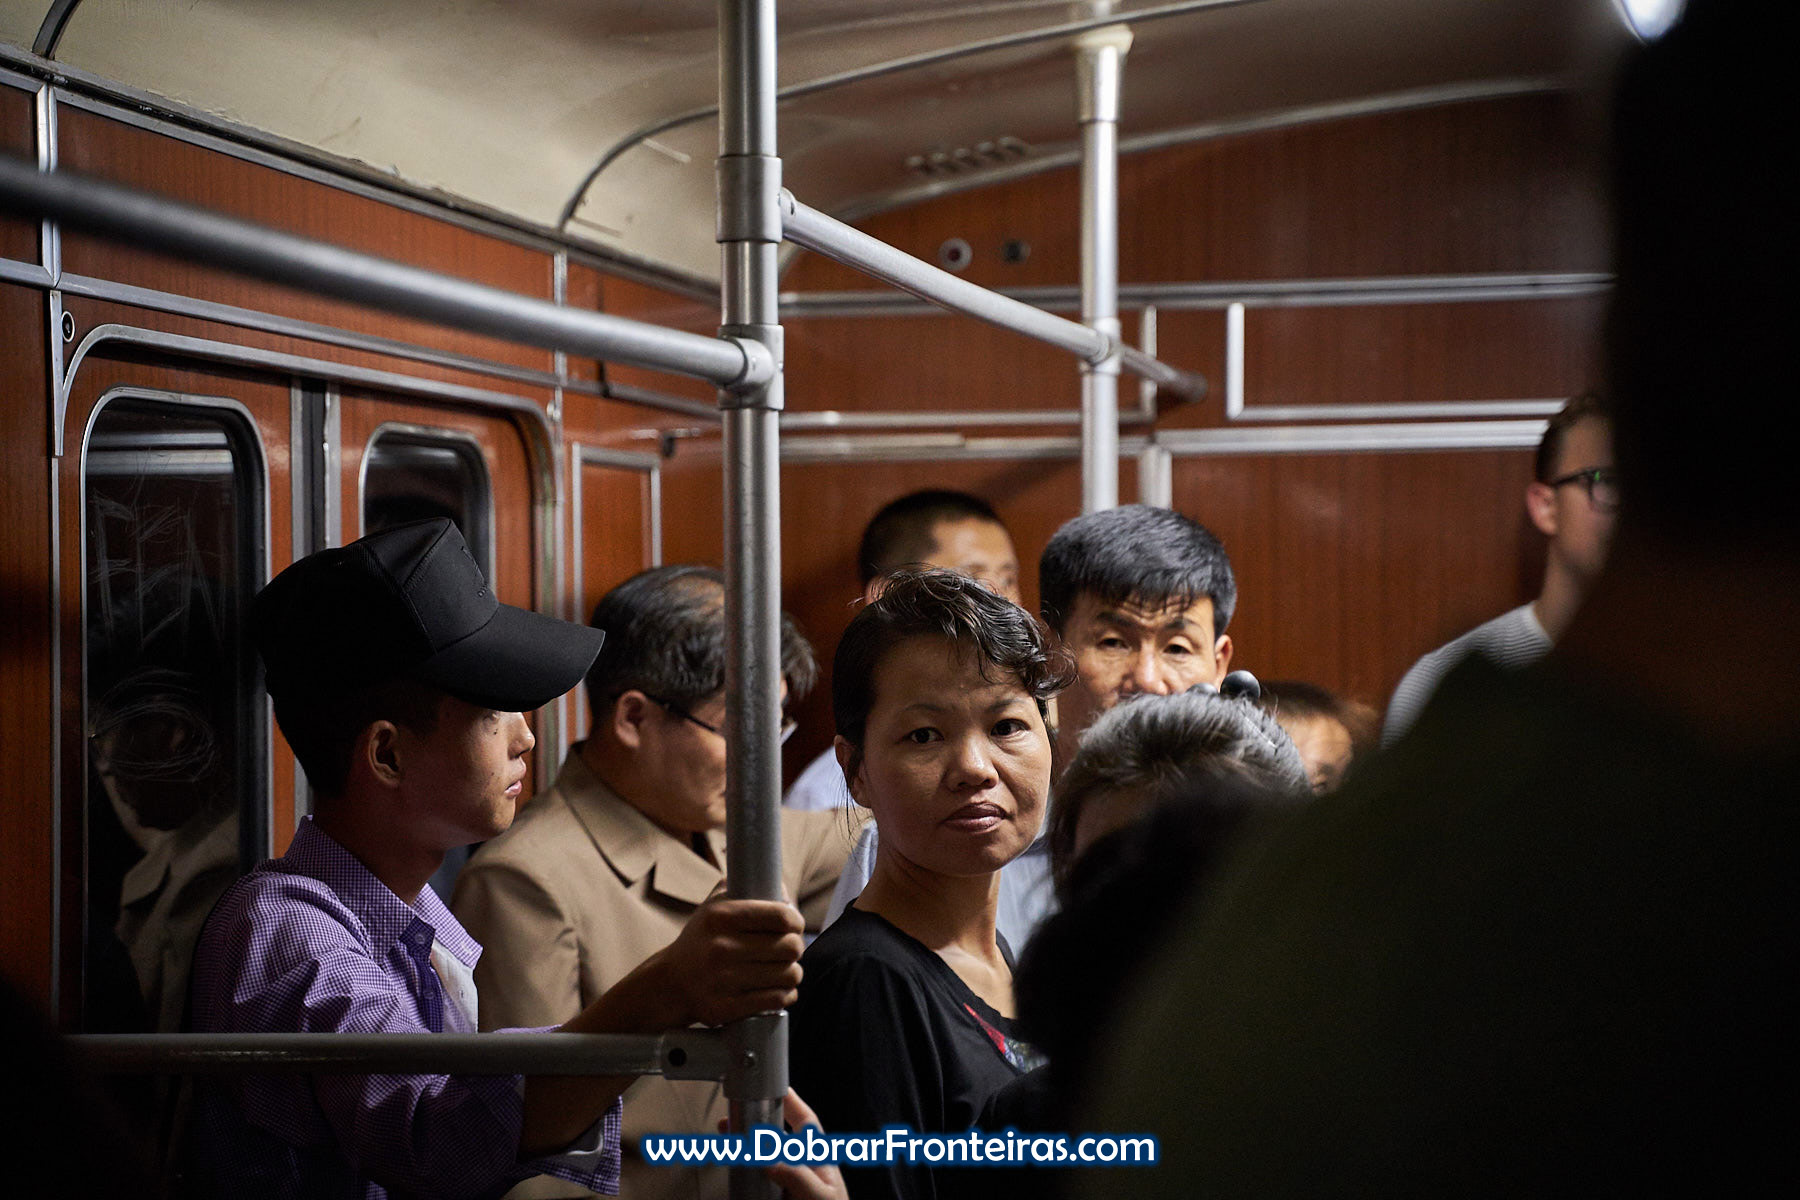 Passageiro no metropolitano de Pyongyang, Coreia do Norte